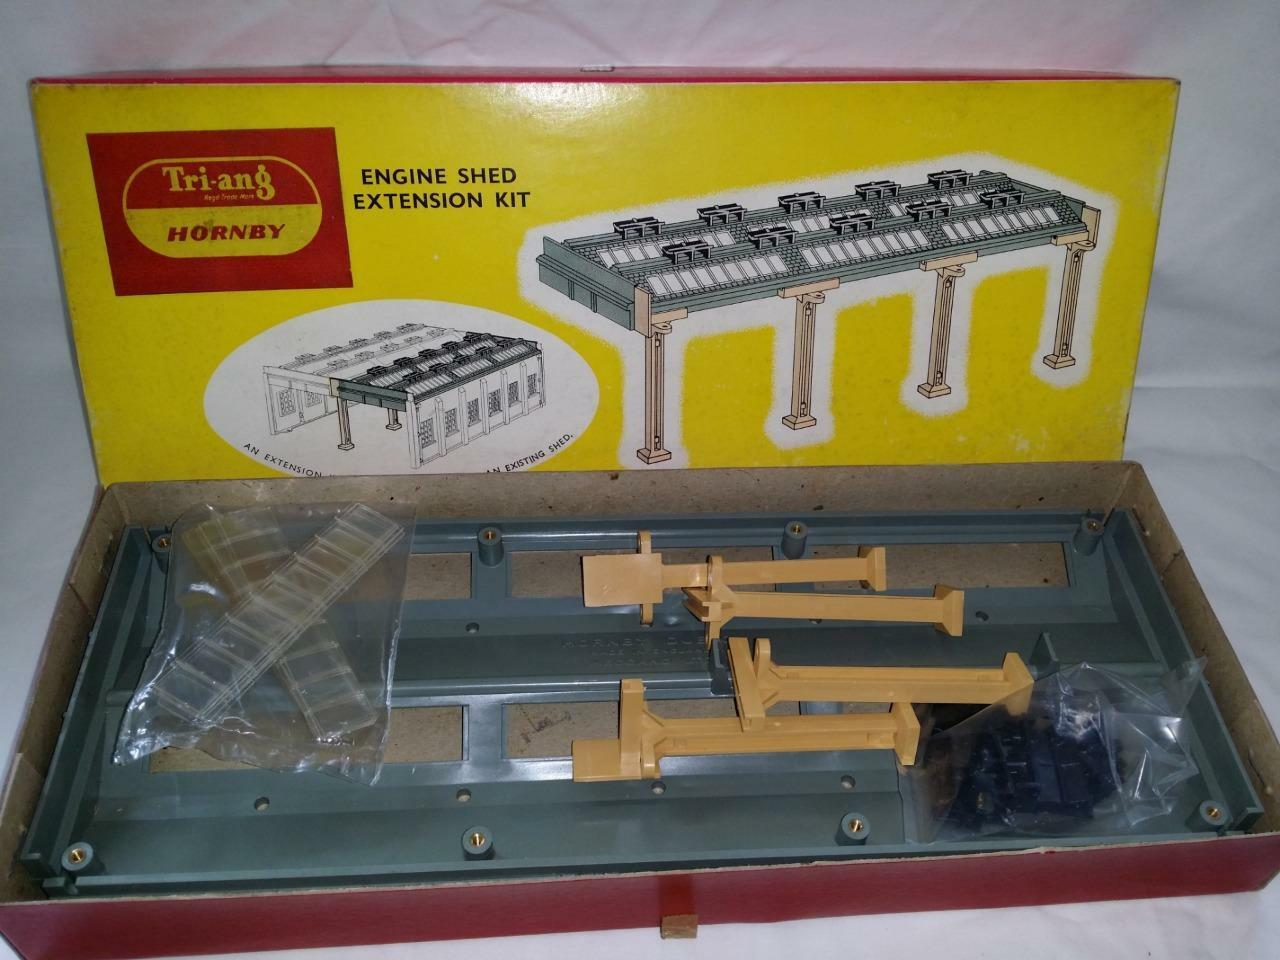 TRIANG HORNBY   HORNBY DUBLO 5006 ENGINE ENGINE ENGINE SHED EXTENSION KIT nuovo UNUSED EX negozio 10e4a0